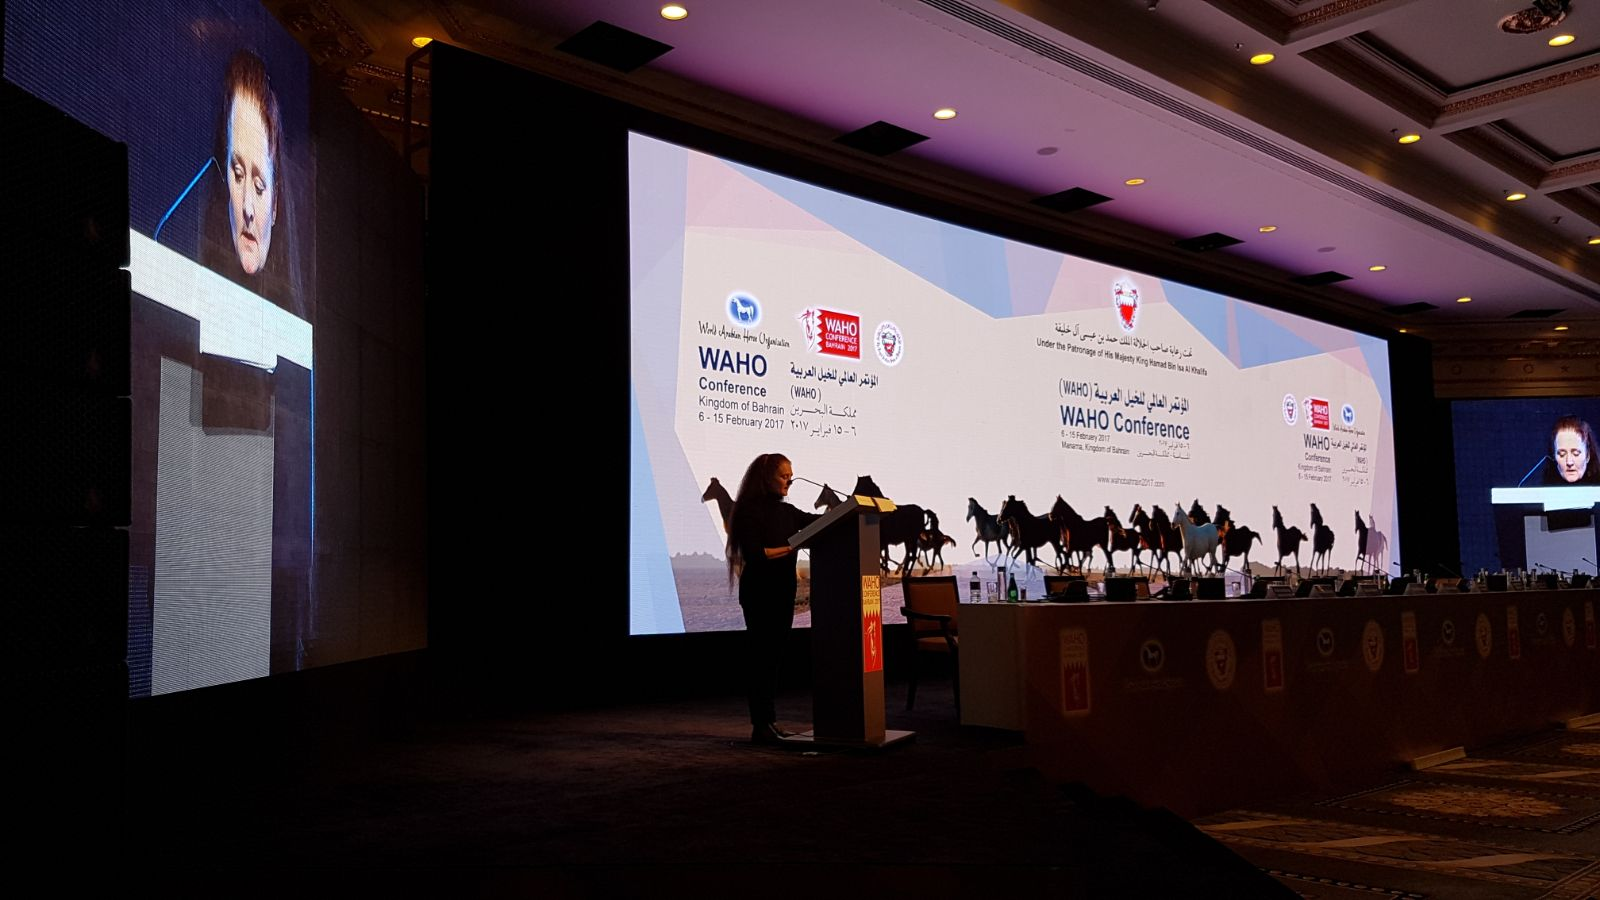 WAHO Conference Bahrain 2017